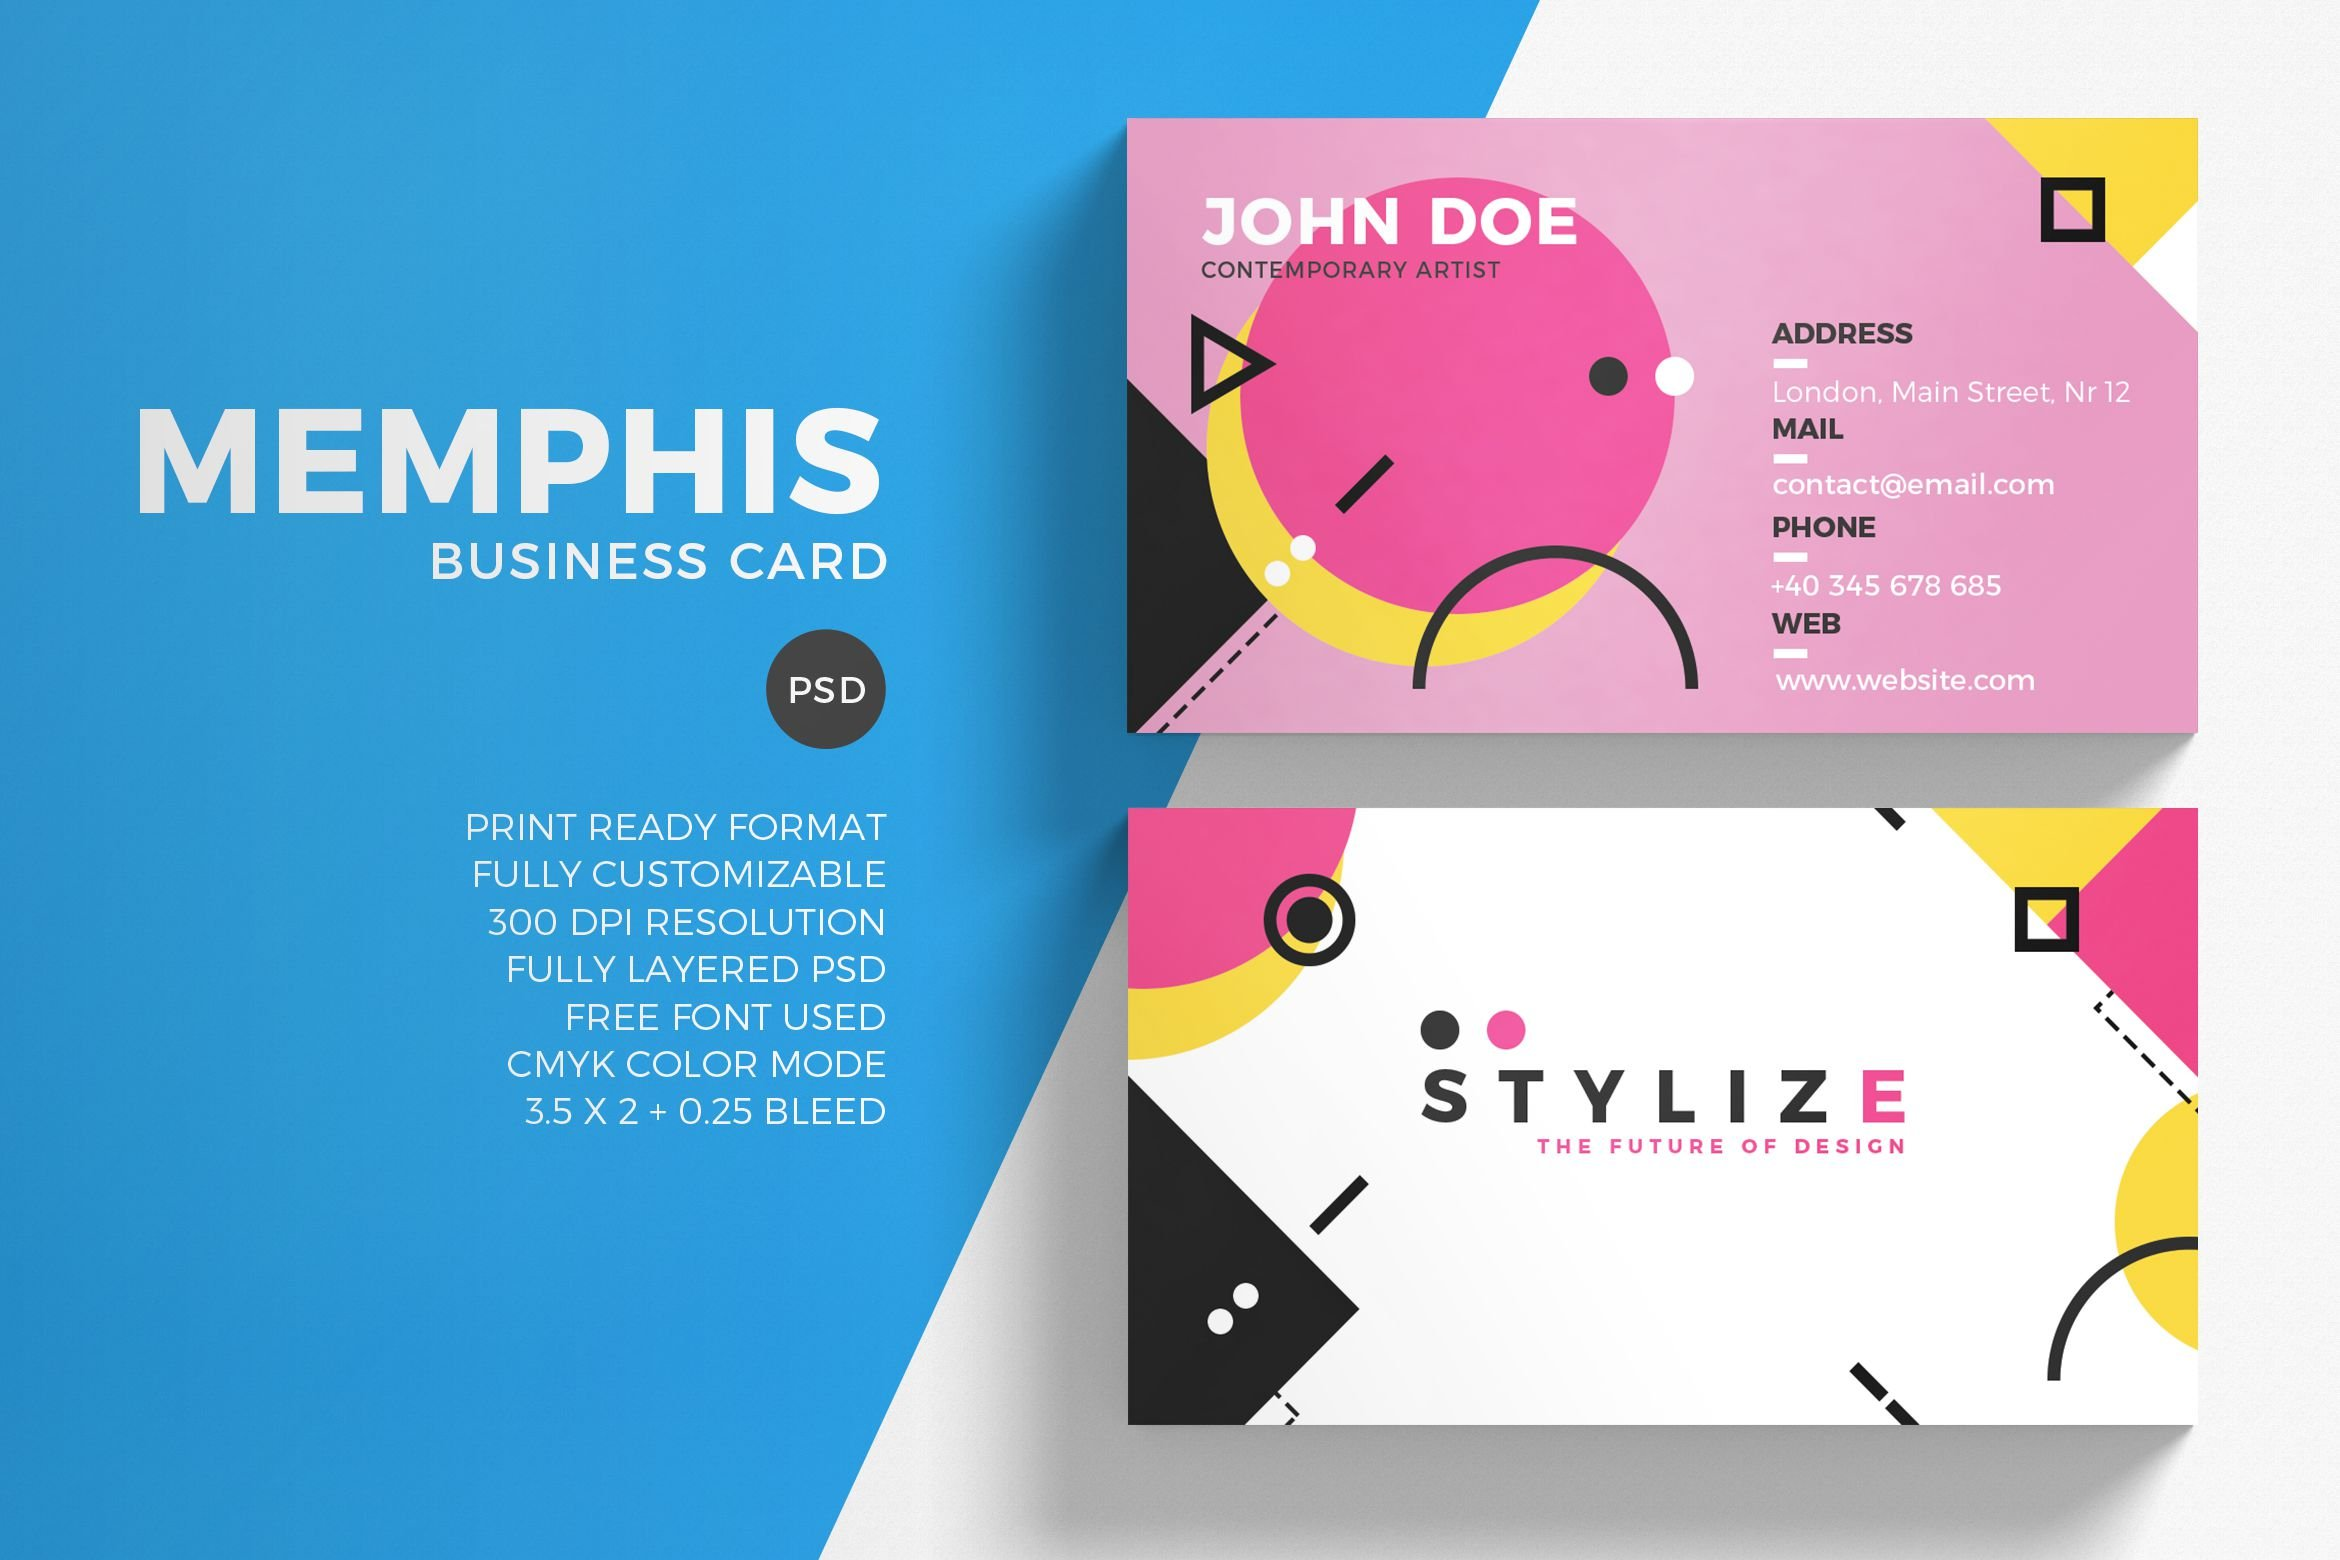 Memphis Business Card Template ~ Business Card Templates ~ Creative ...